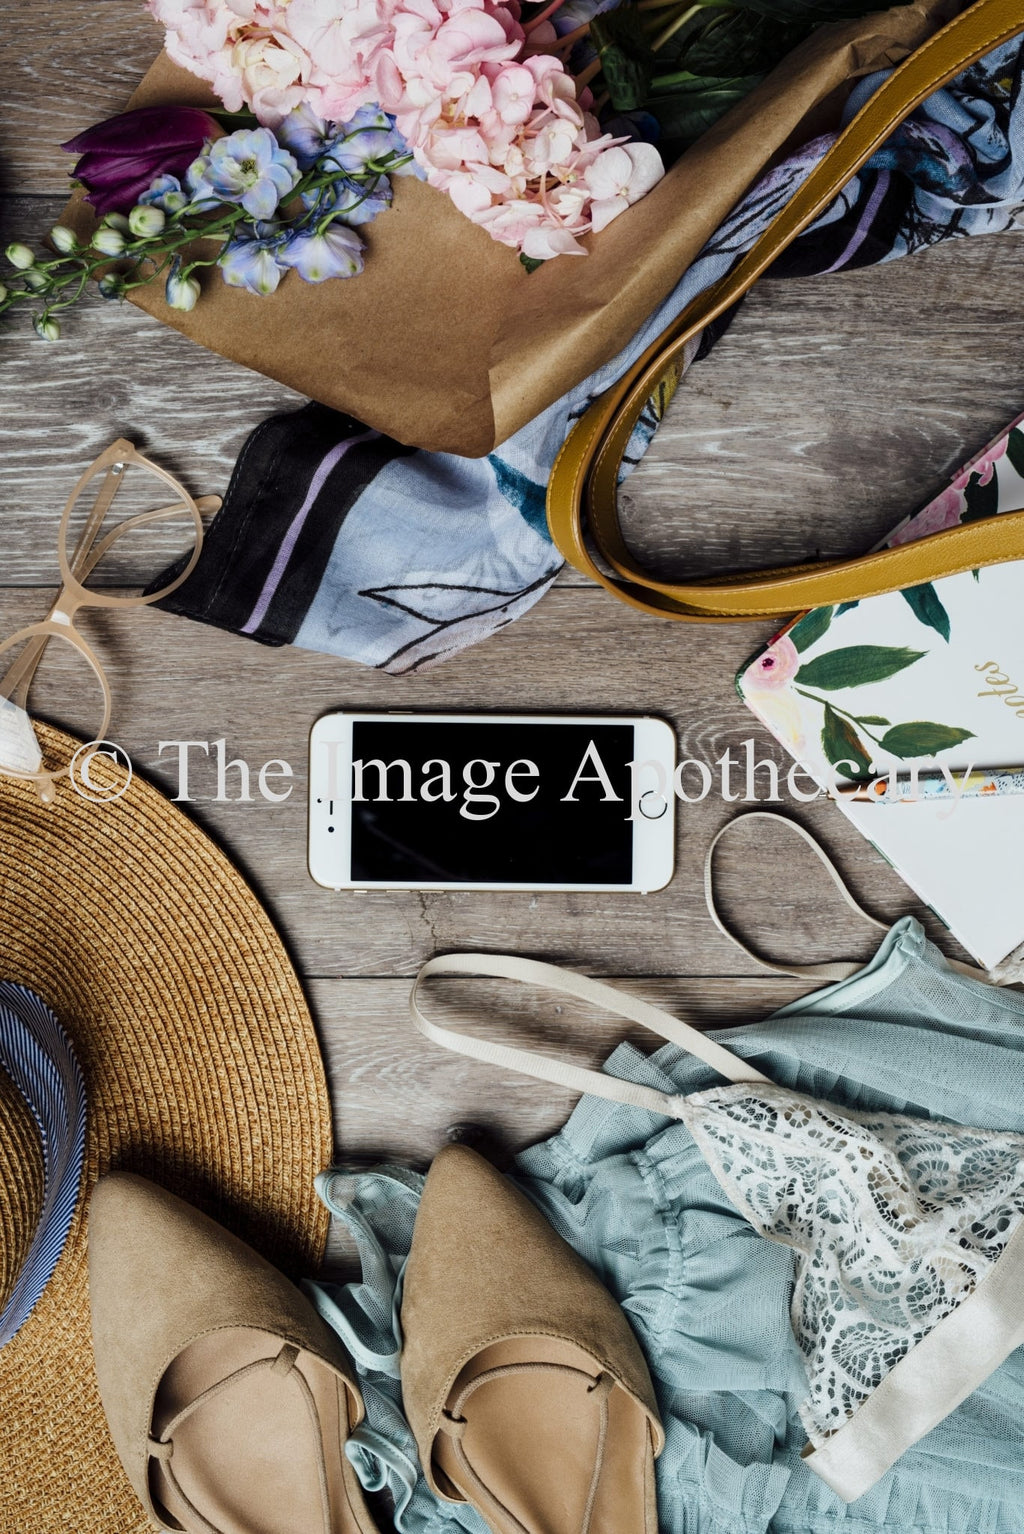 TheImageApothecary-6289MO - Stock Photography by The Image Apothecary